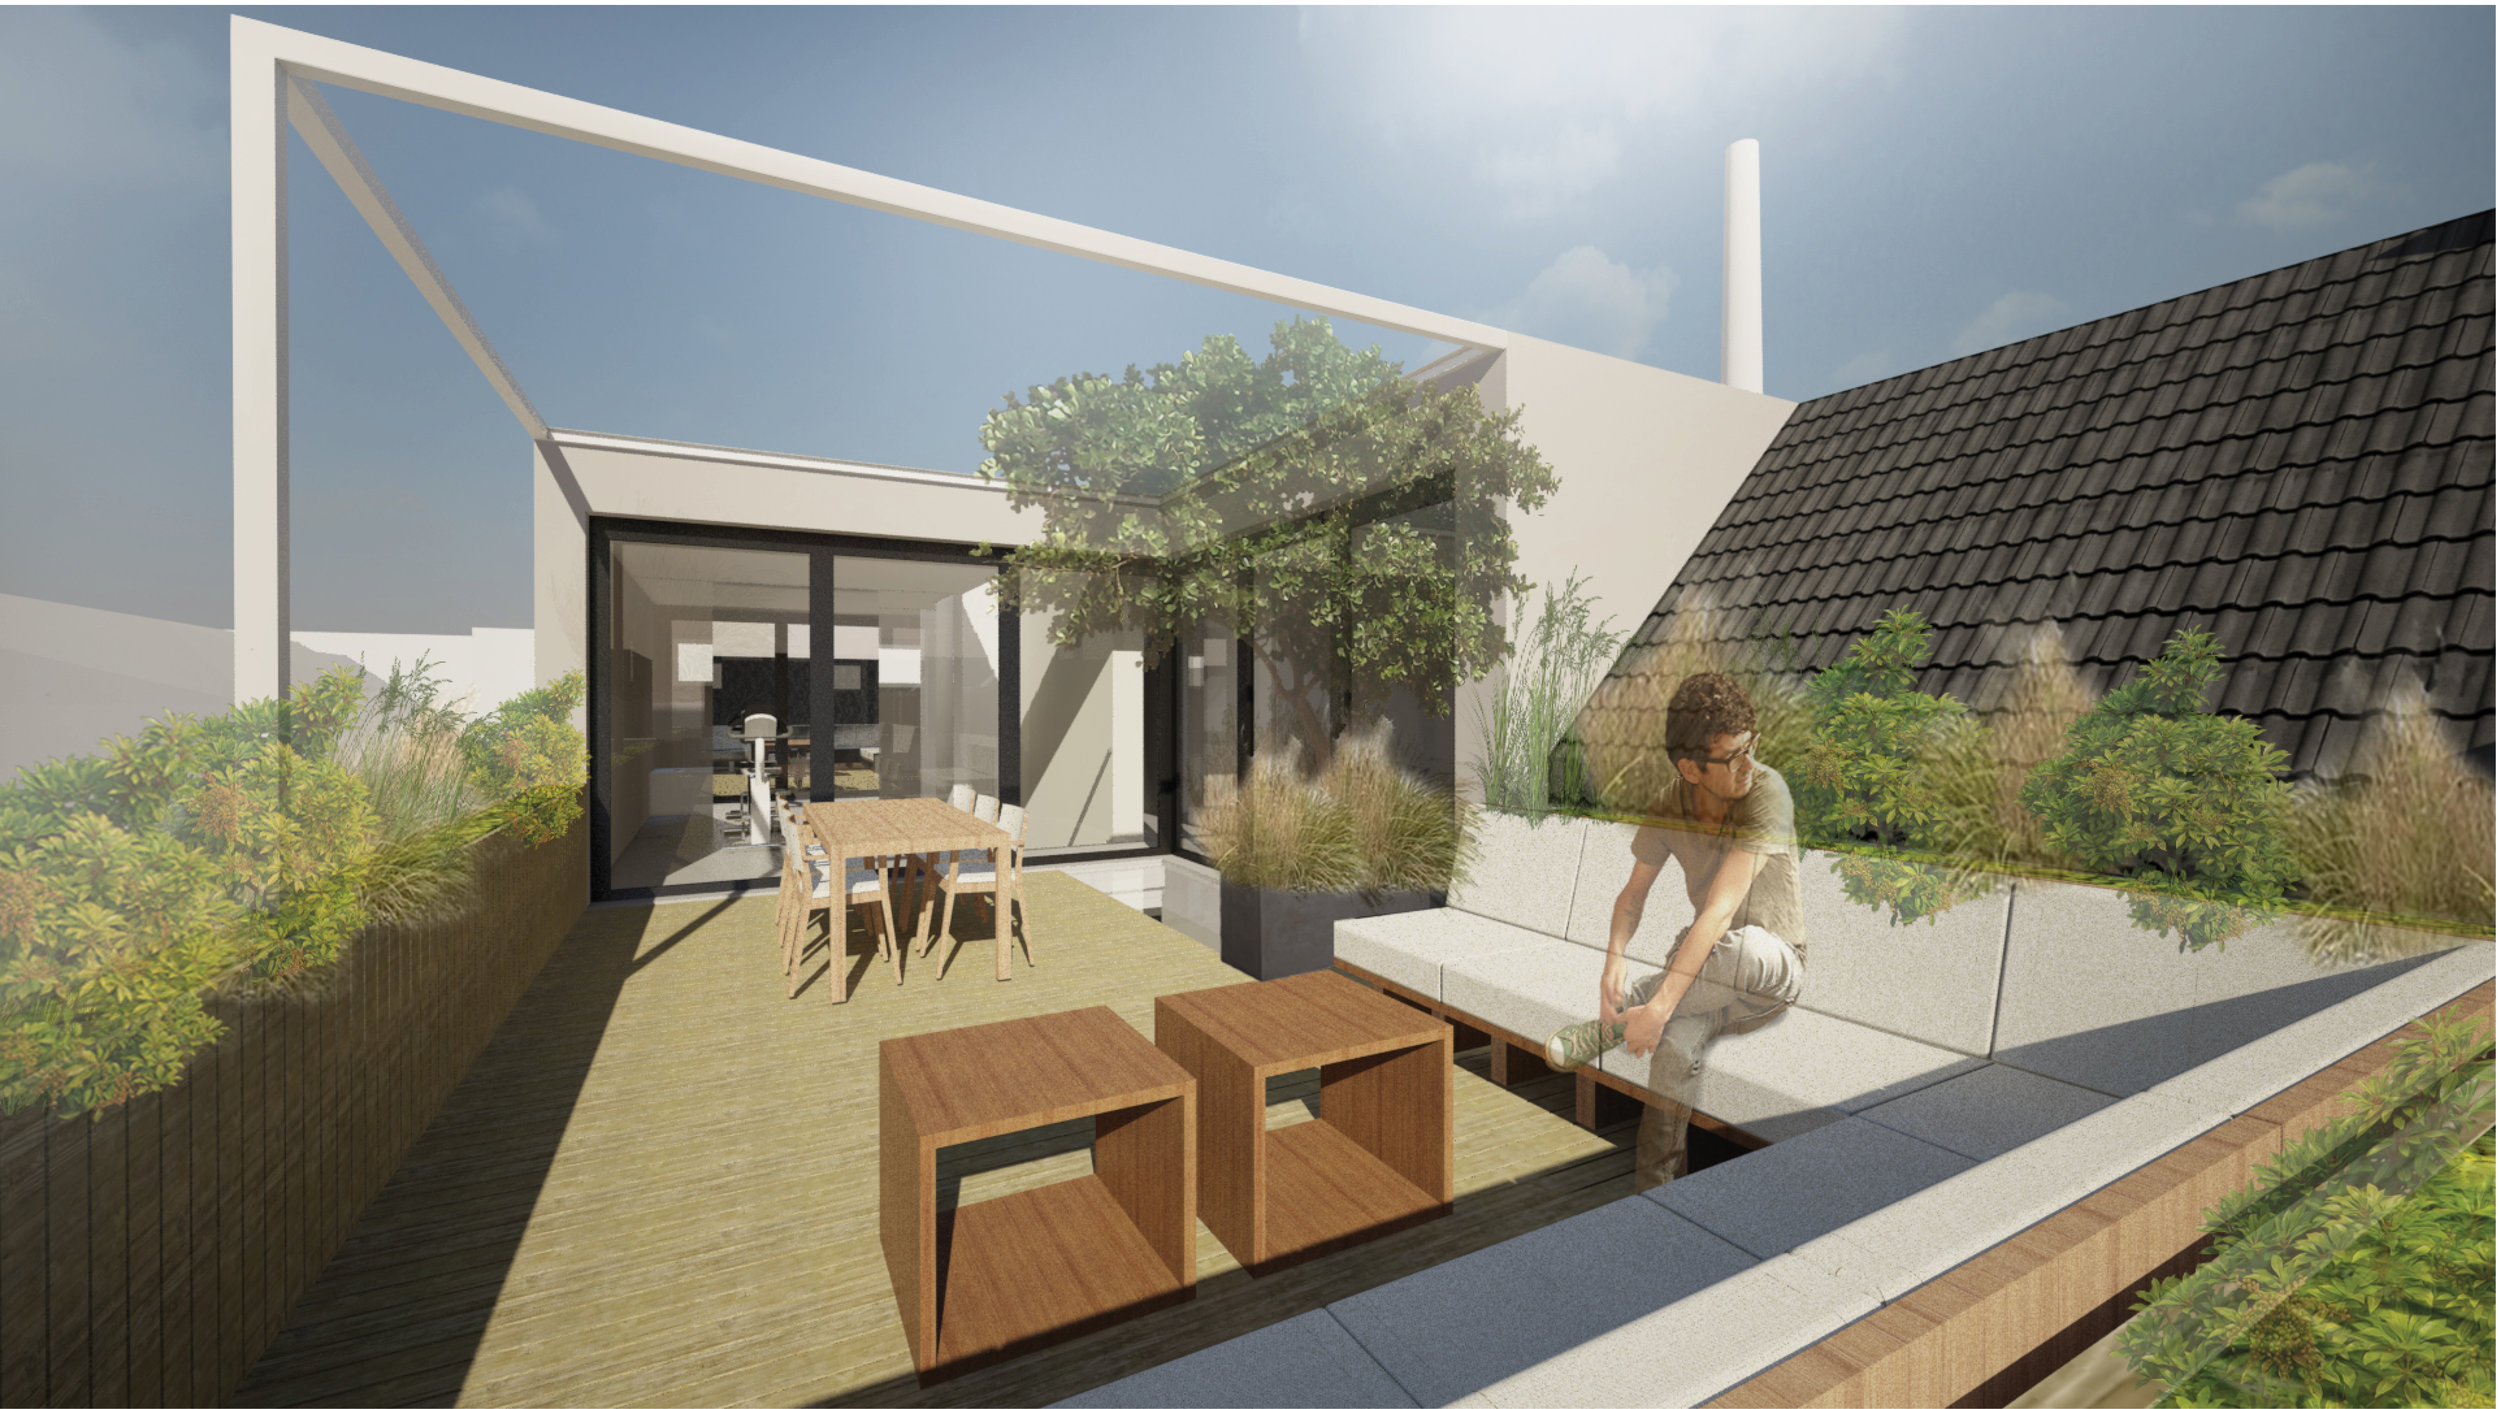 a future proof investment   two attached canal houses with office space, rental apartments and a penthouse with roof terrace